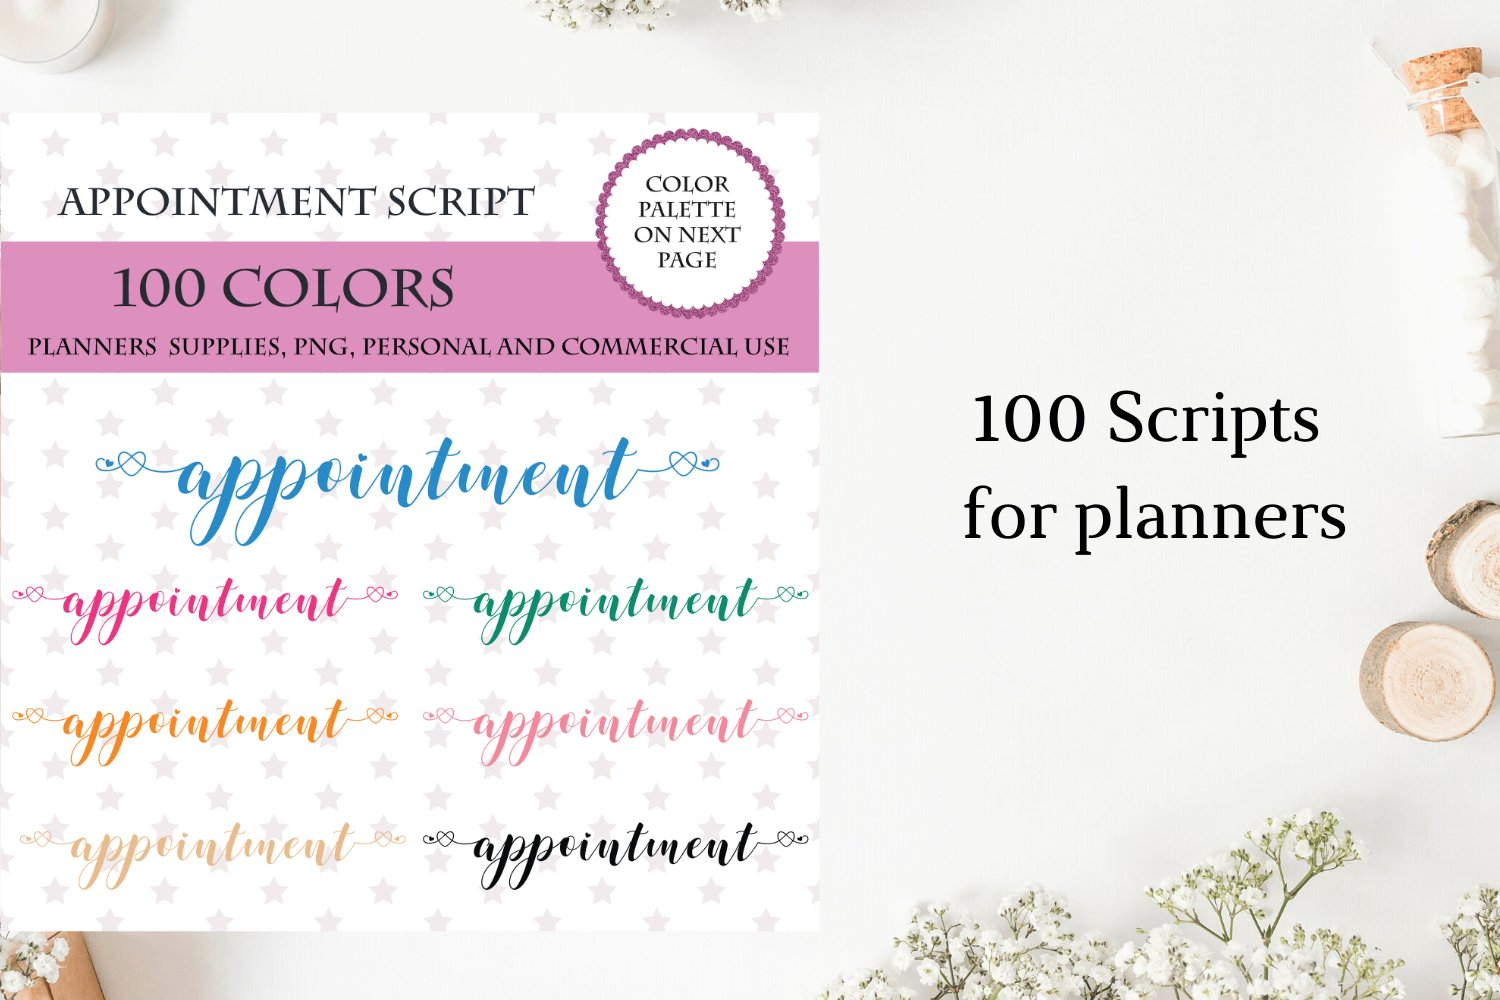 100 Appointment font clipart, Appointment sticker clipart example image 1